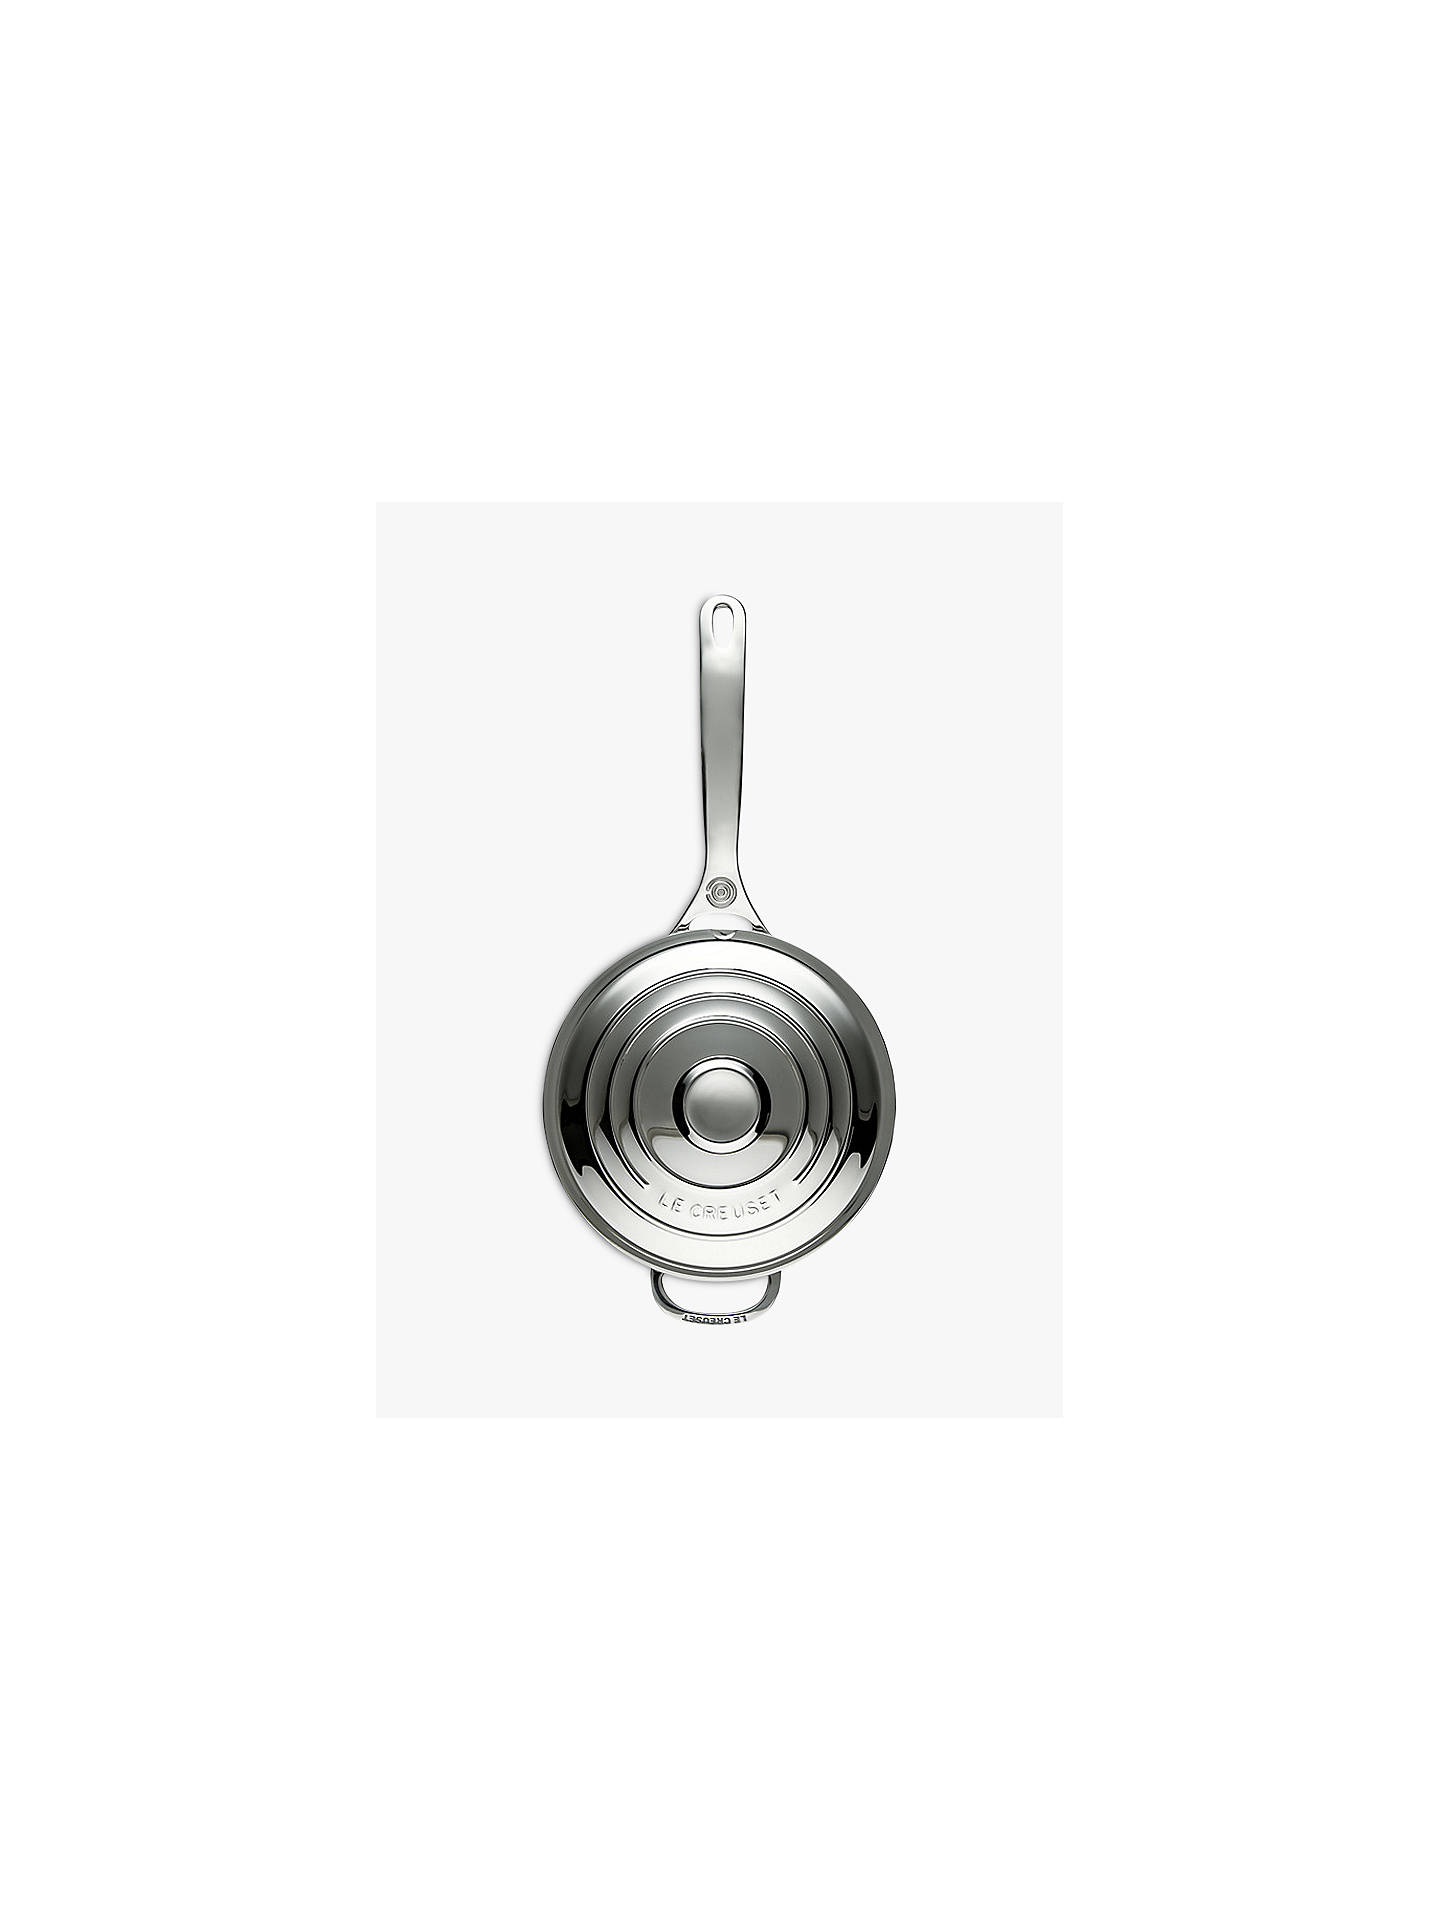 Buy Le Creuset Signature 3-Ply Stainless Steel 20cm Saucepan Online at johnlewis.com